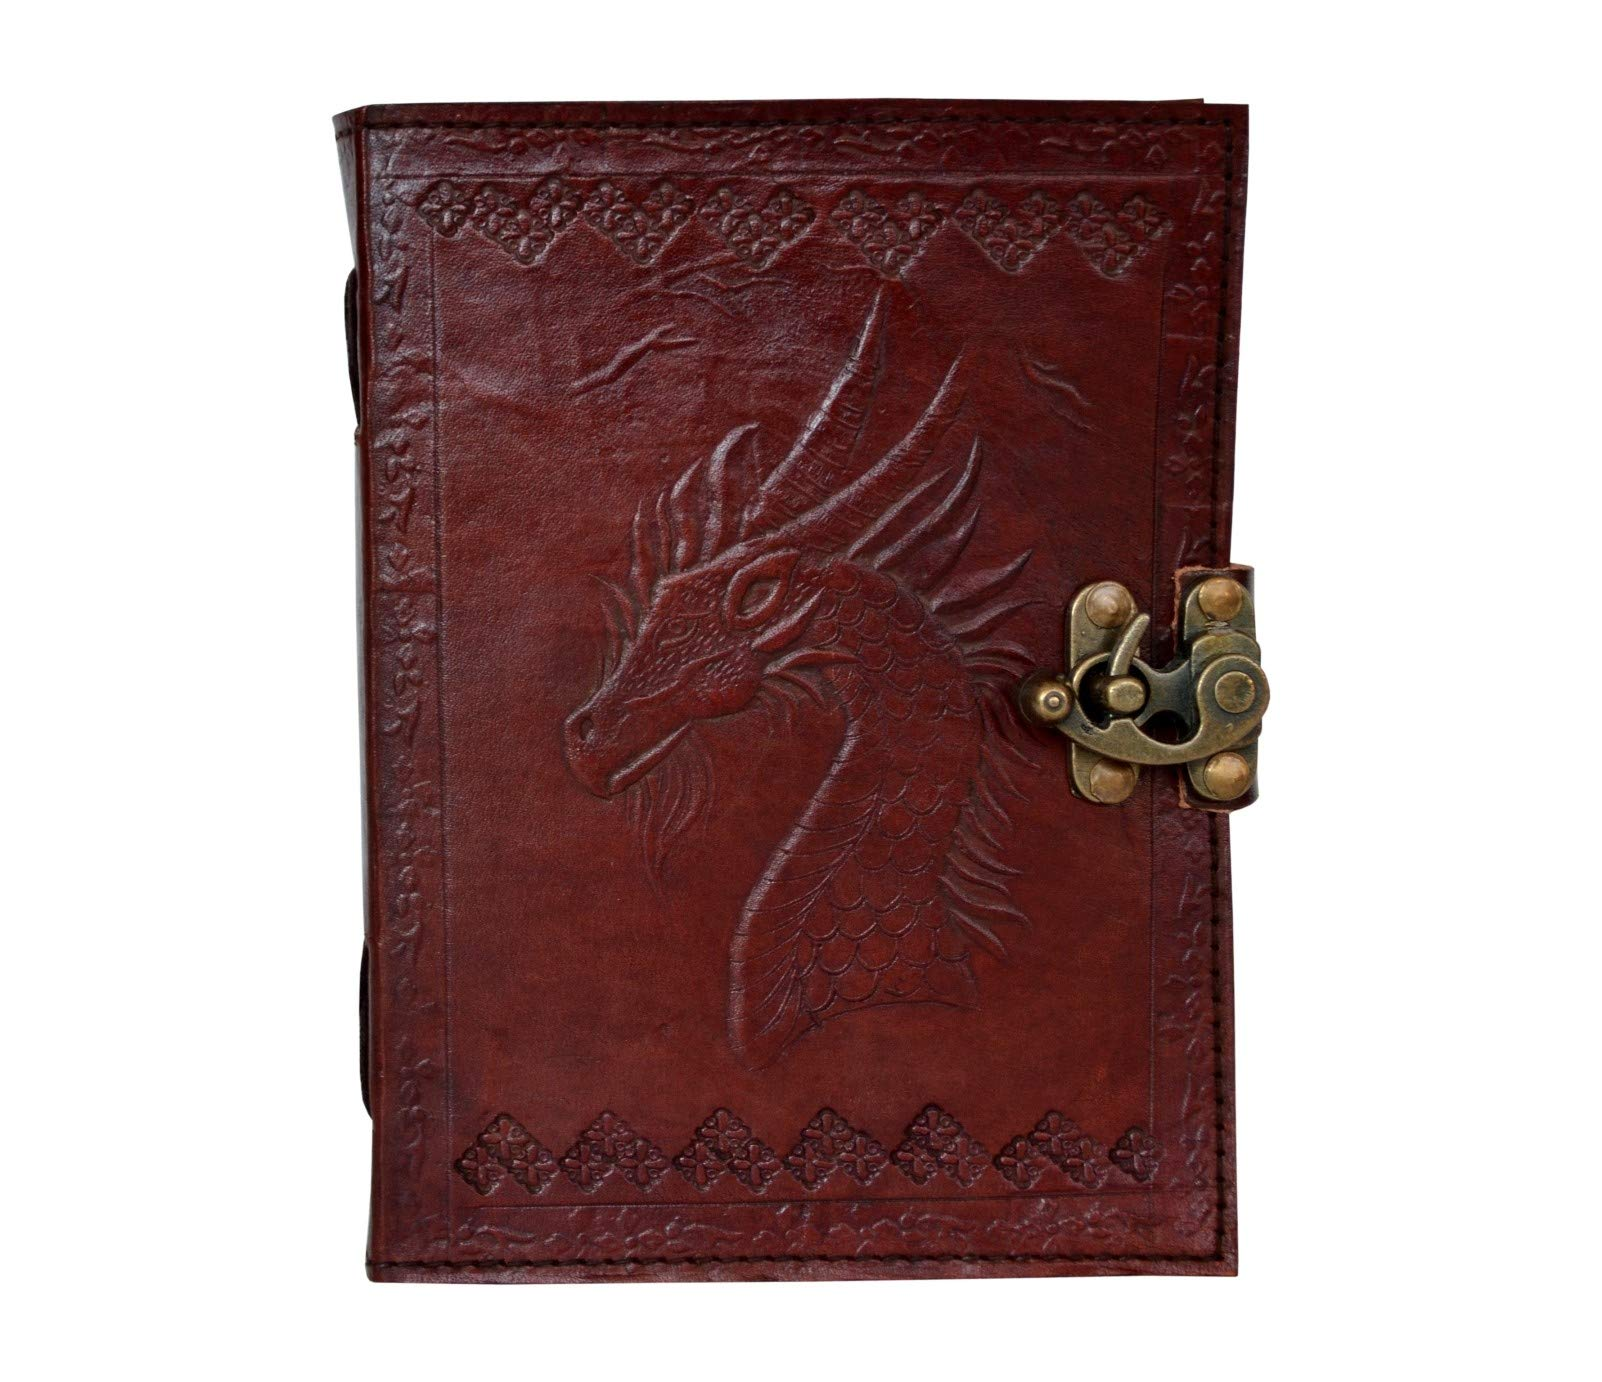 Games of Thrones Dragon Embossed Handmade Leather Journal Notebook Diary Antique Writing Handbook Daily Planner Diary College Sketchbook Unlined Paper 5 x 7 inches for Men and Women